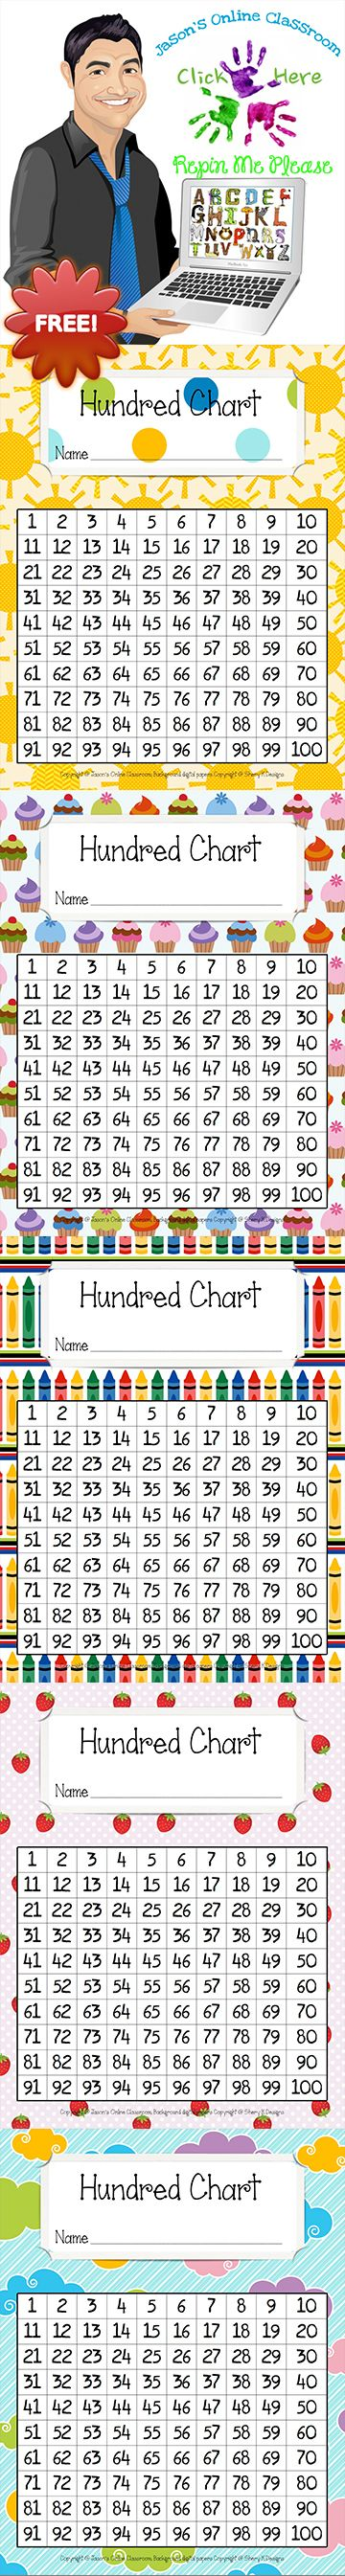 REPIN ME PLEASE :) - Freebie hundred chart in 28 different styles including basic black and white.